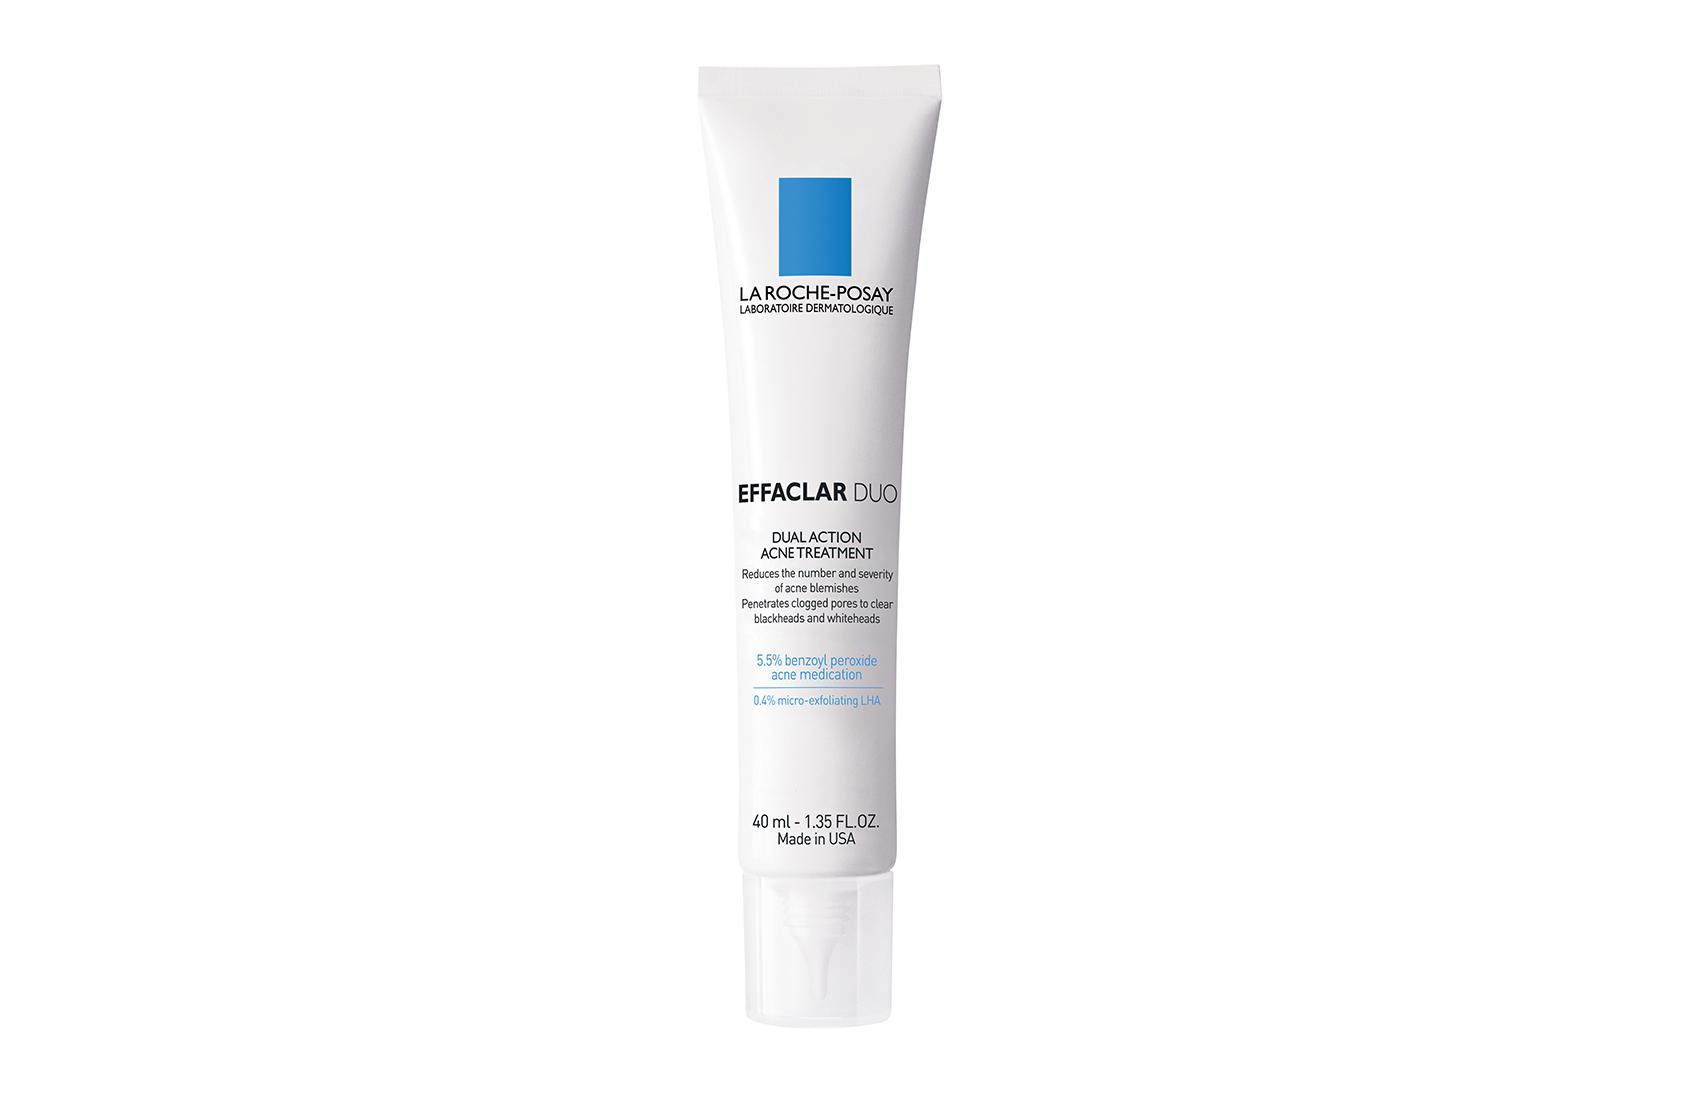 La Roche Posay Effaclar Duo Dual Action Acne Treatement